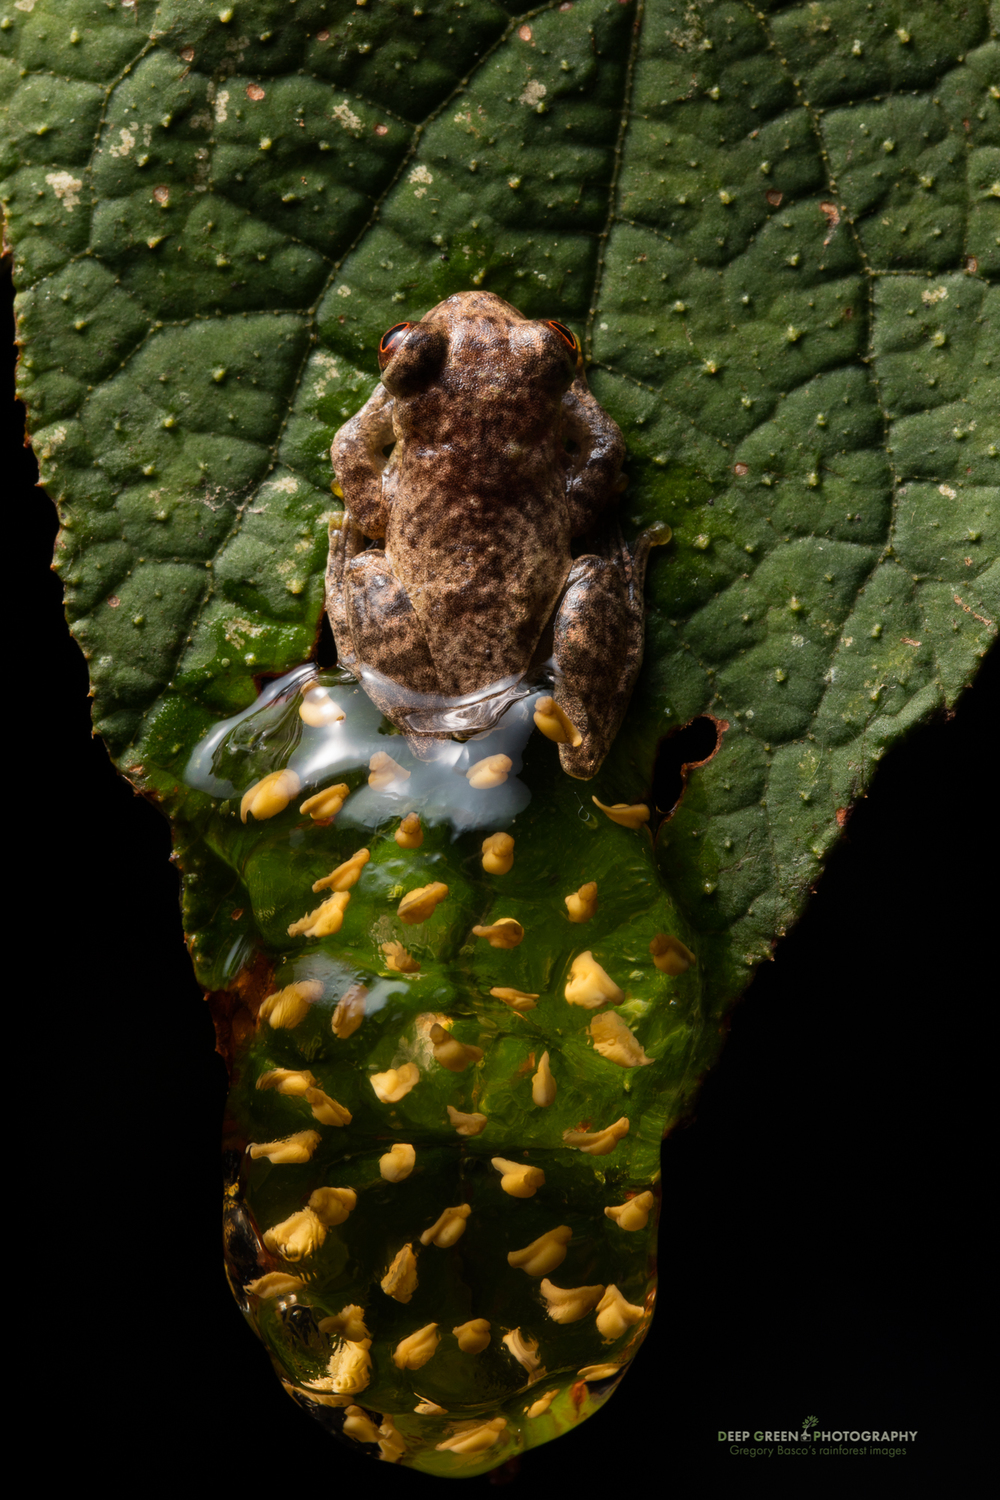 A tree frog guarding its egg mess in the rainforest in Ecuador